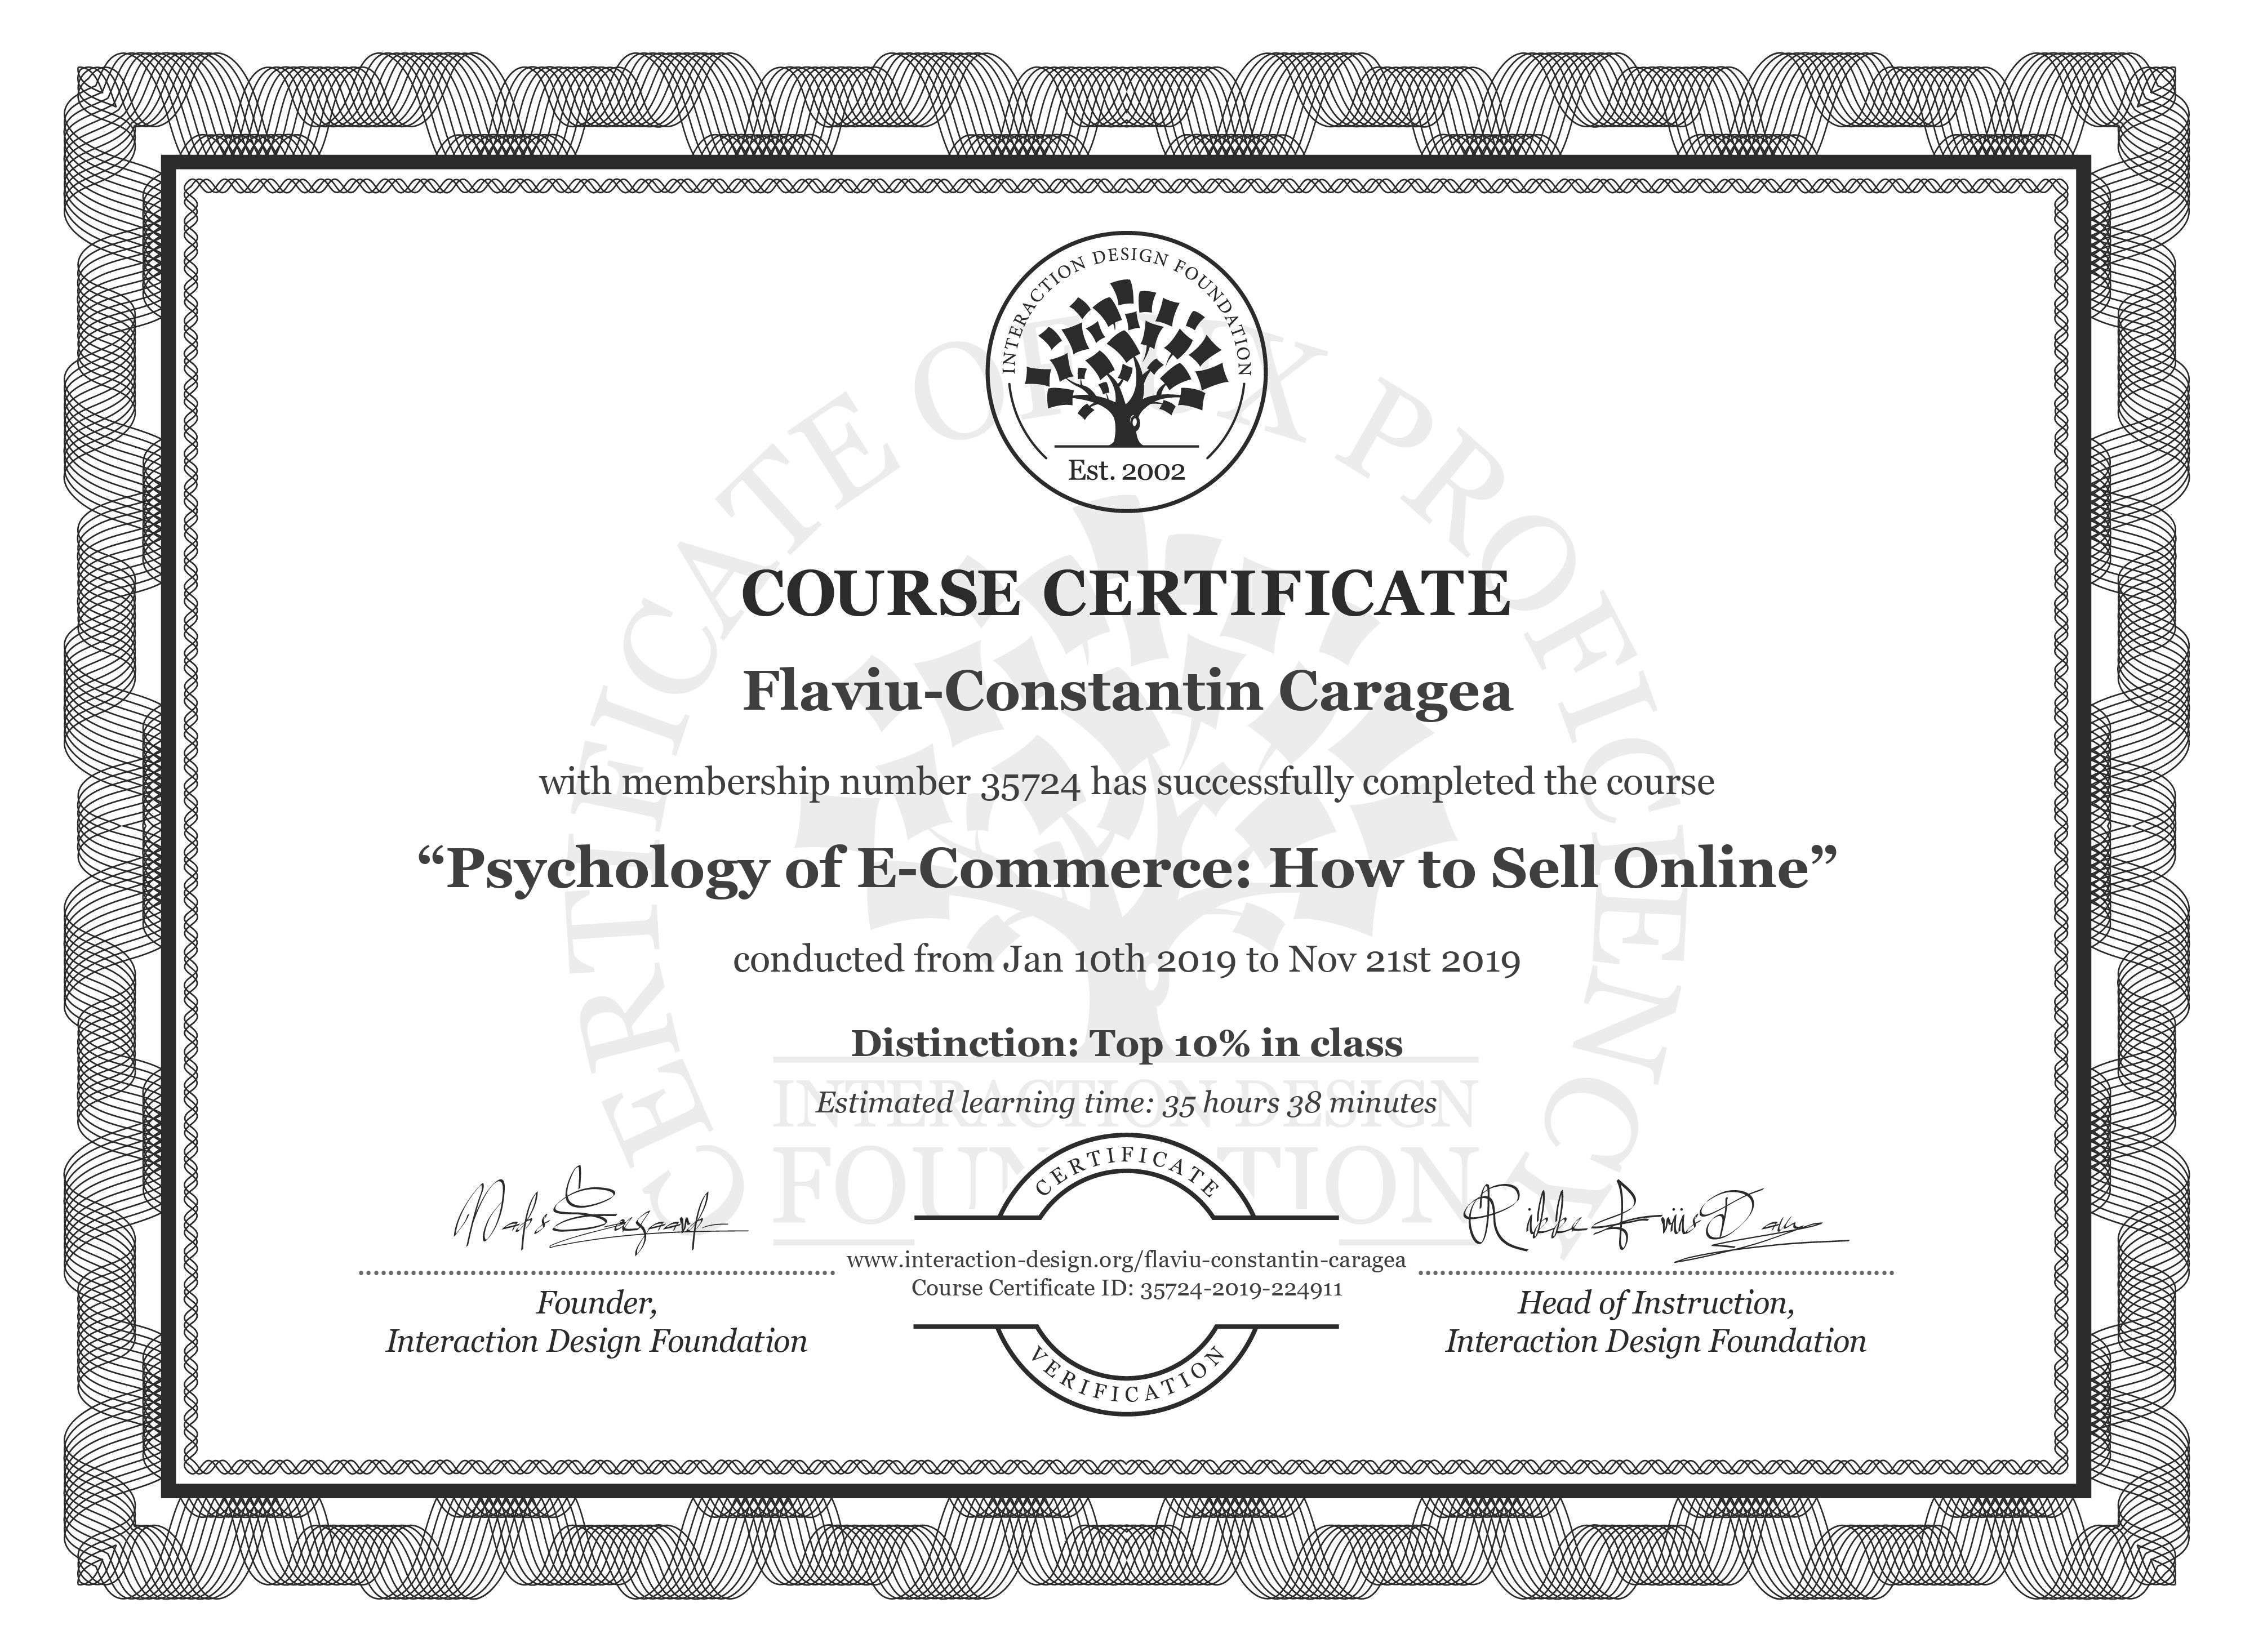 Flaviu-Constantin Caragea: Course Certificate - Psychology of E-Commerce: How to Sell Online